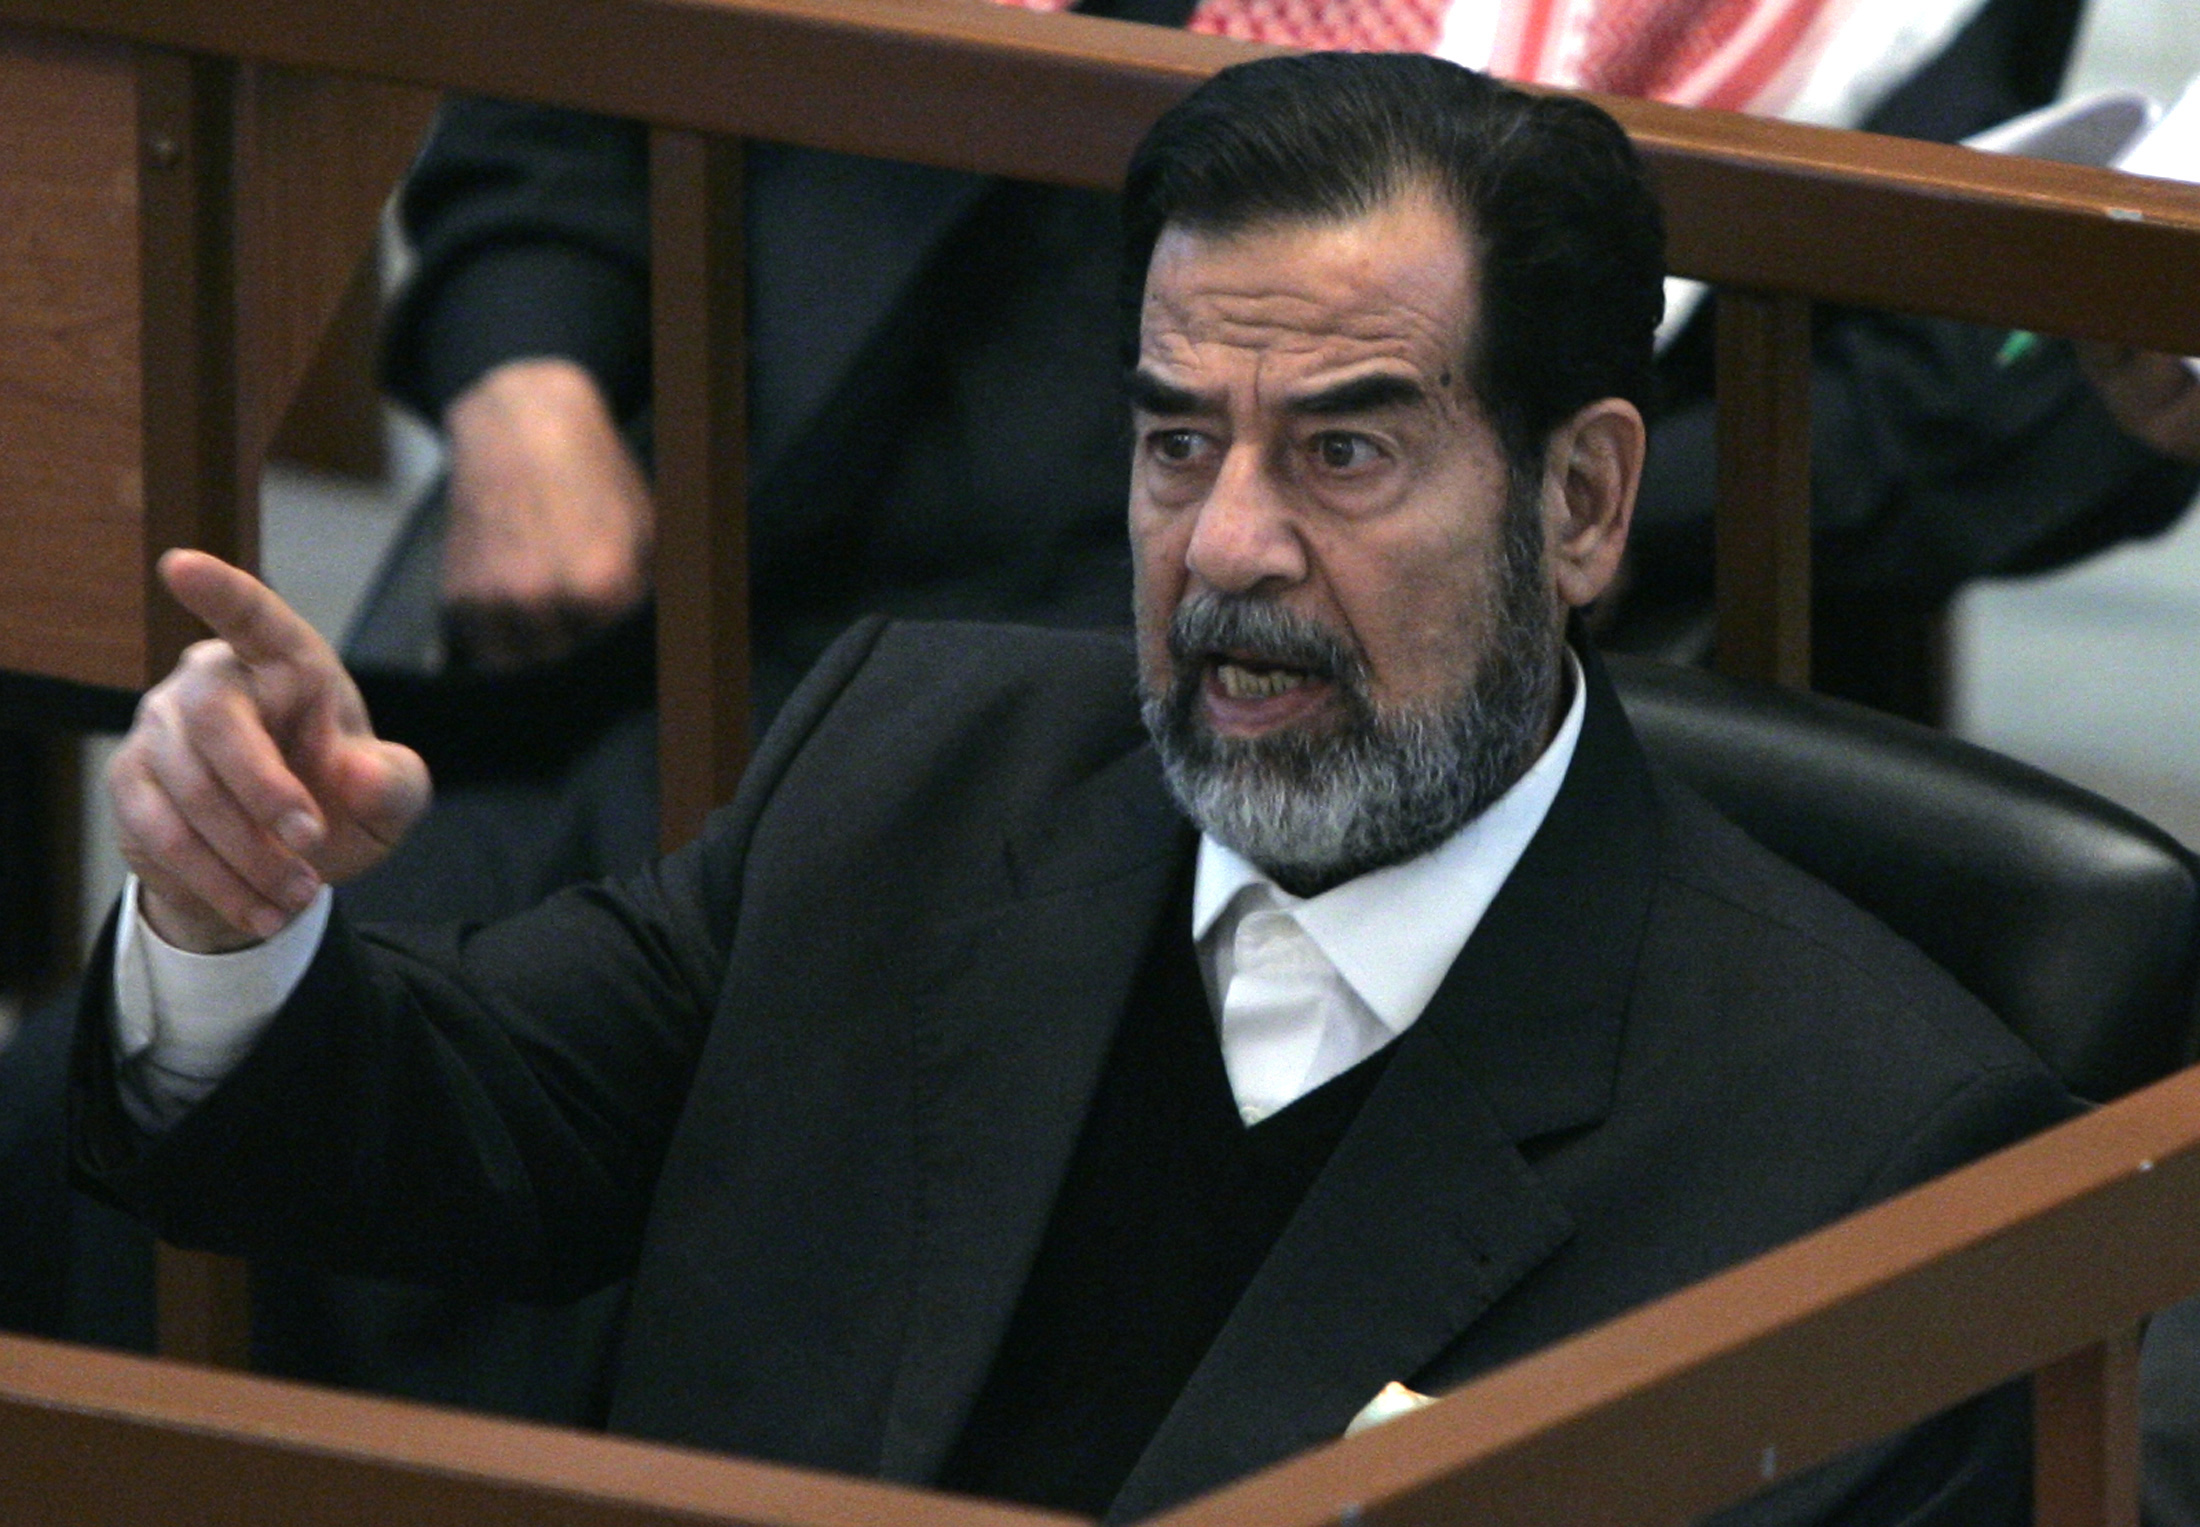 Ousted Iraqi President Saddam Hussein reacts in court during the Anfal genocide trial in Baghdad December 21, 2006.  REUTERS/Nikola Solic    (IRAQ) - RTR1KLSJ